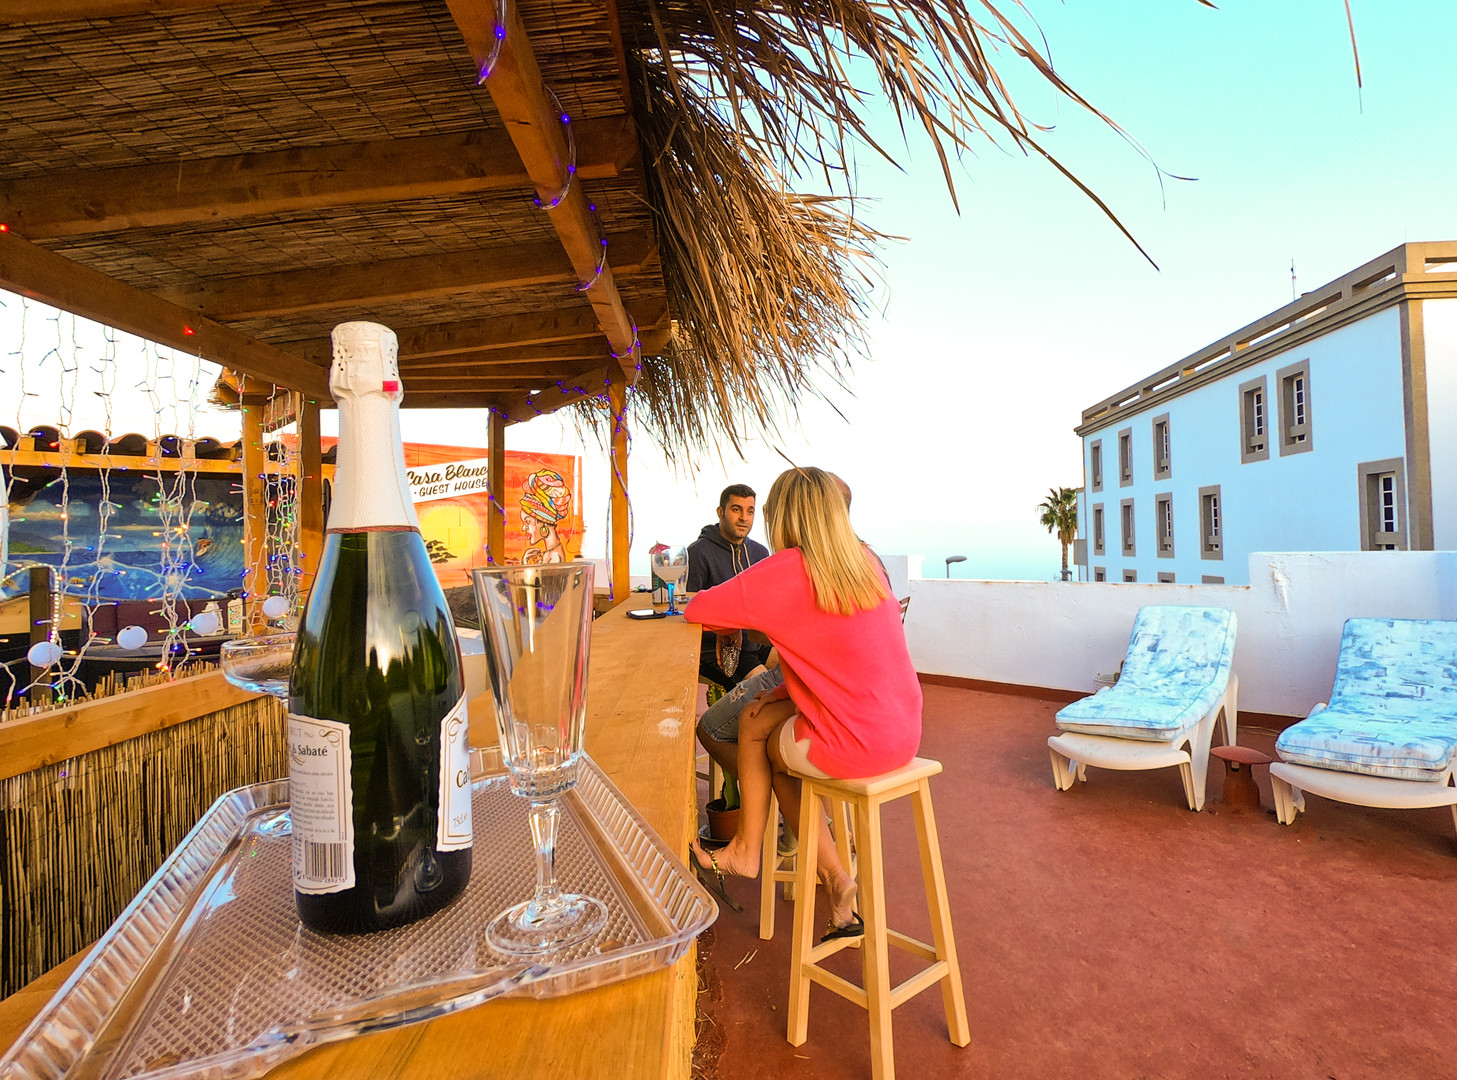 Casa Blanca Guest house Tenerife tiki bar with champagne and glasses on bar